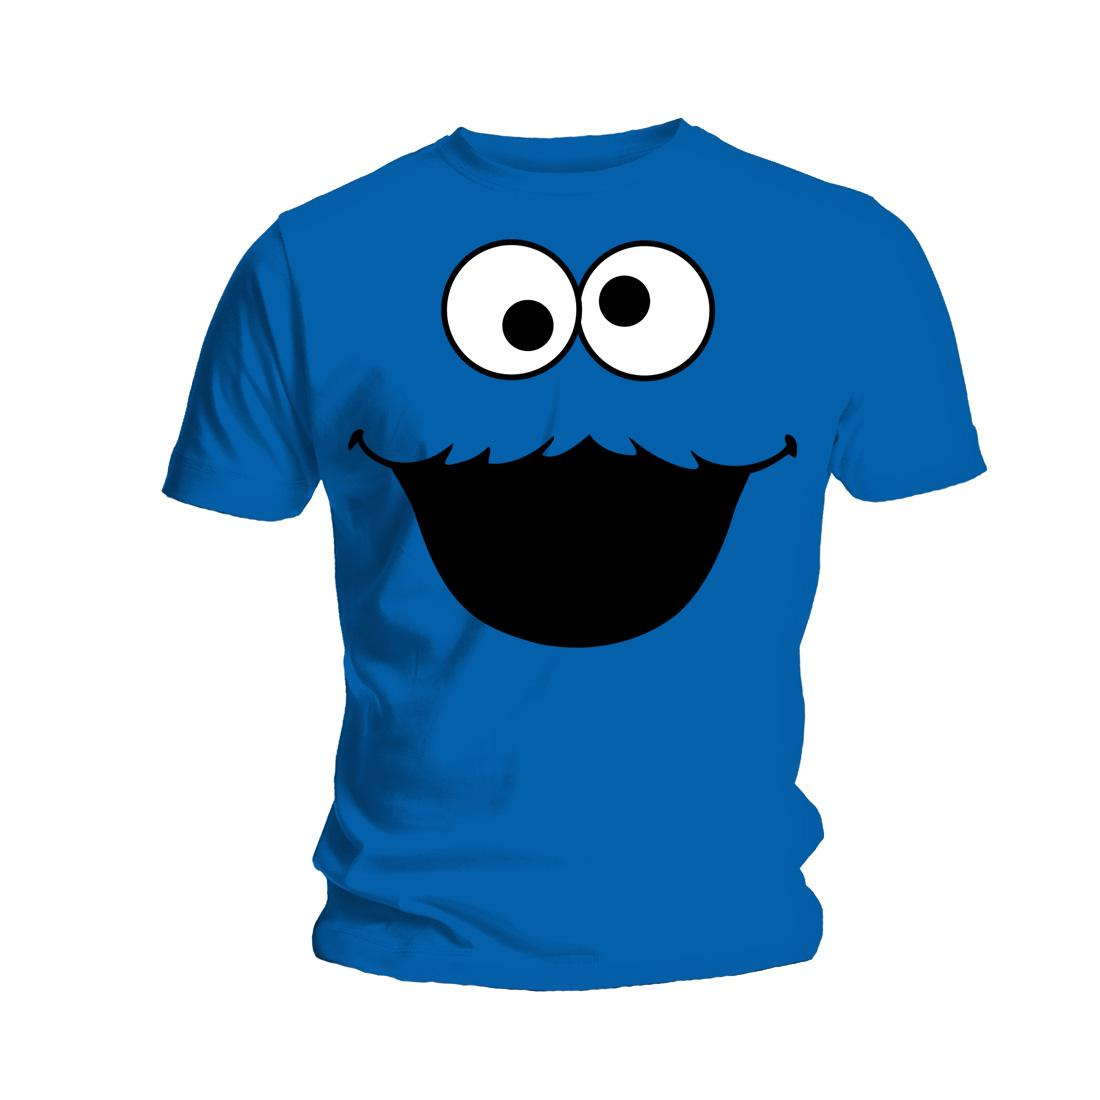 You searched for: cookie monster shirt! Etsy is the home to thousands of handmade, vintage, and one-of-a-kind products and gifts related to your search. No matter what you're looking for or where you are in the world, our global marketplace of sellers can help you .